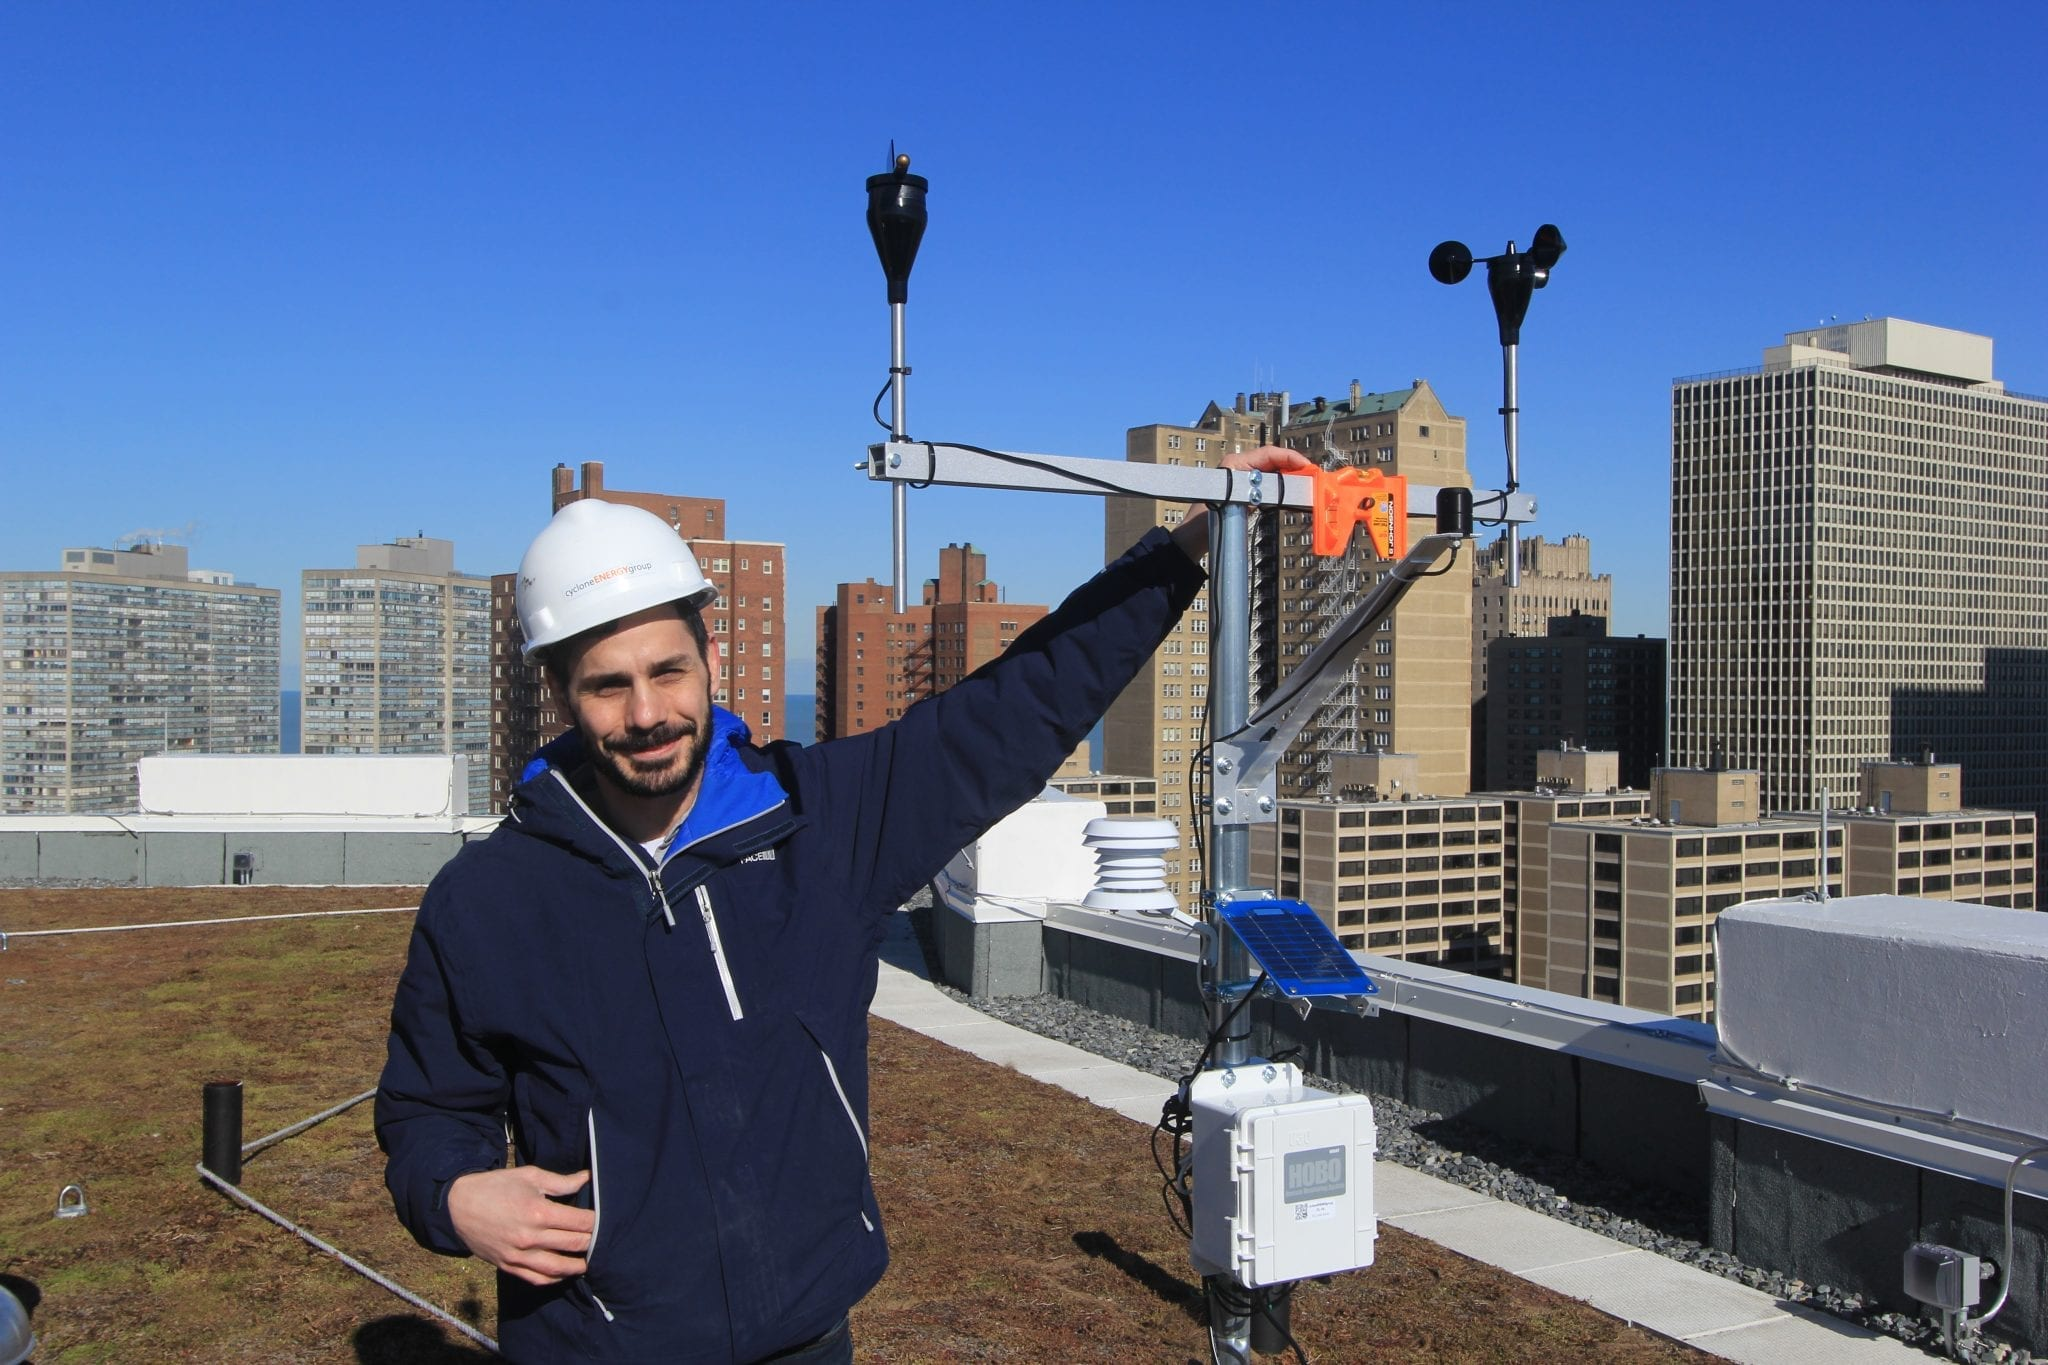 thermal-performance-of-balconies-and-floor-slabs-study-update-1-weather-station-installation-1